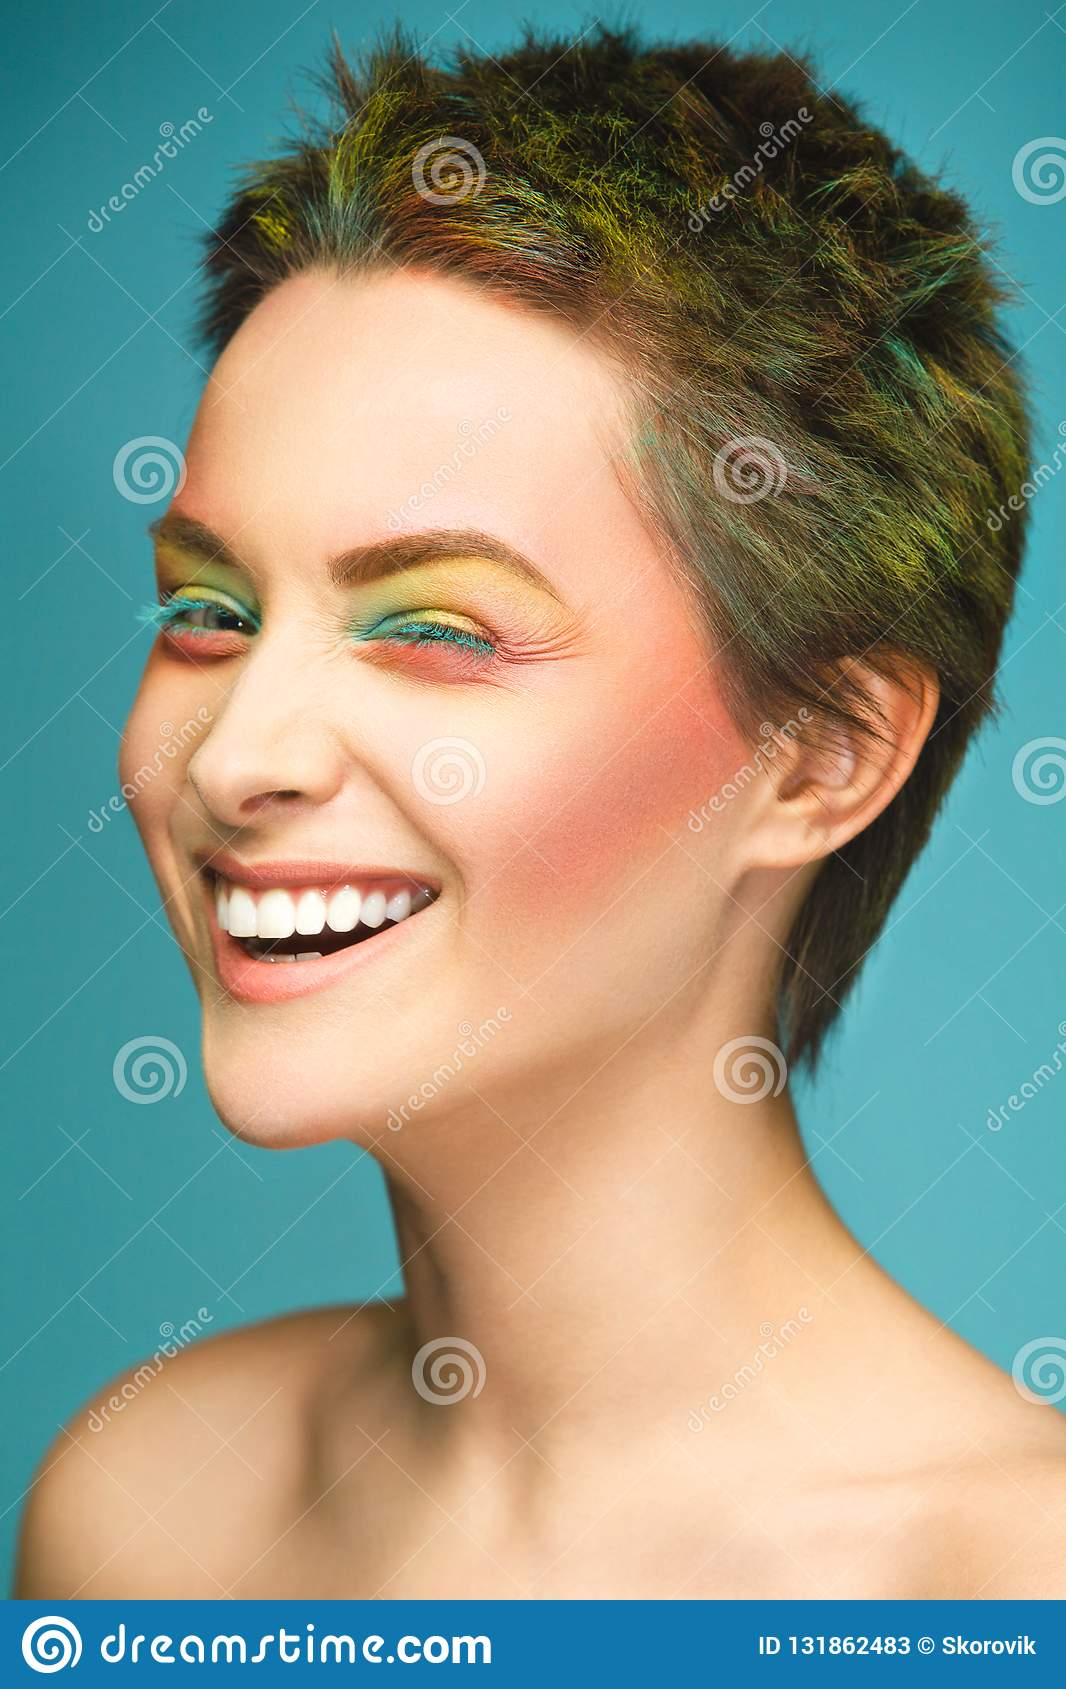 Close Up Portrait Of A Woman With Brightly Colored Hair And Rainbow Like Makeup Multi Colored Hair Beautiful Lips And Stock Image Image Of Pink Portrait 131862483